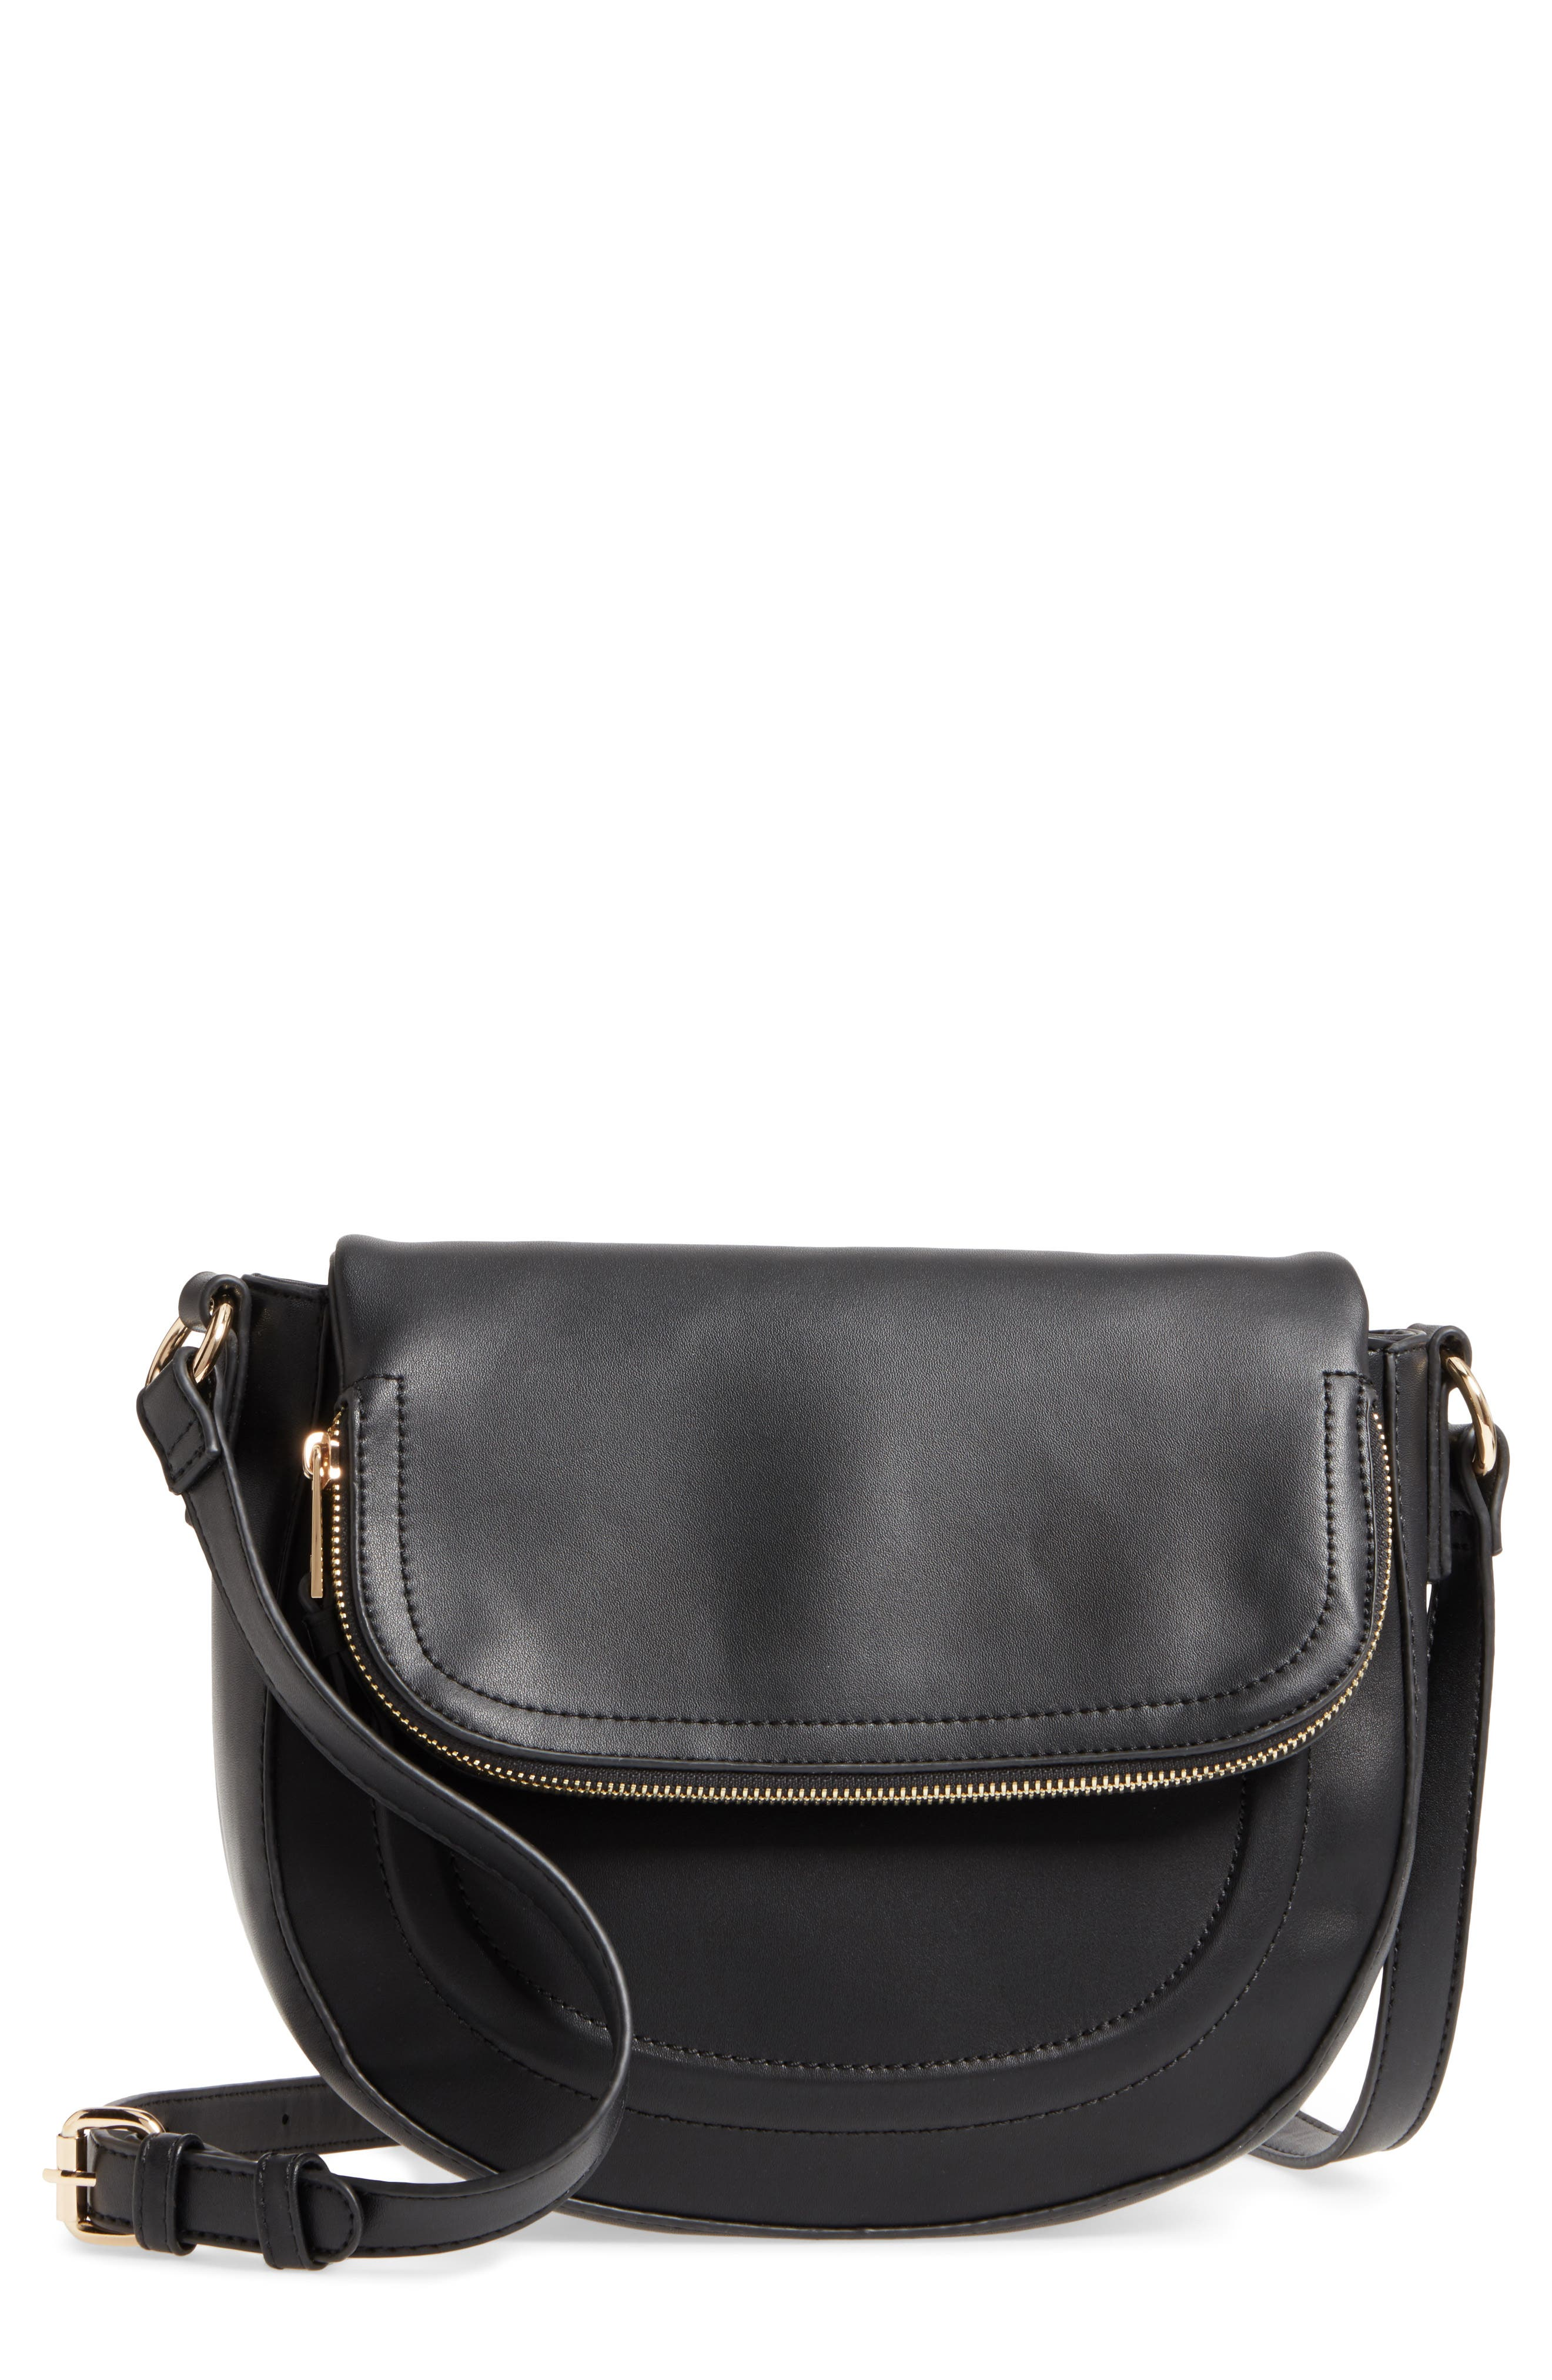 Main Image - Sole Society Adden Faux Leather Crossbody Bag